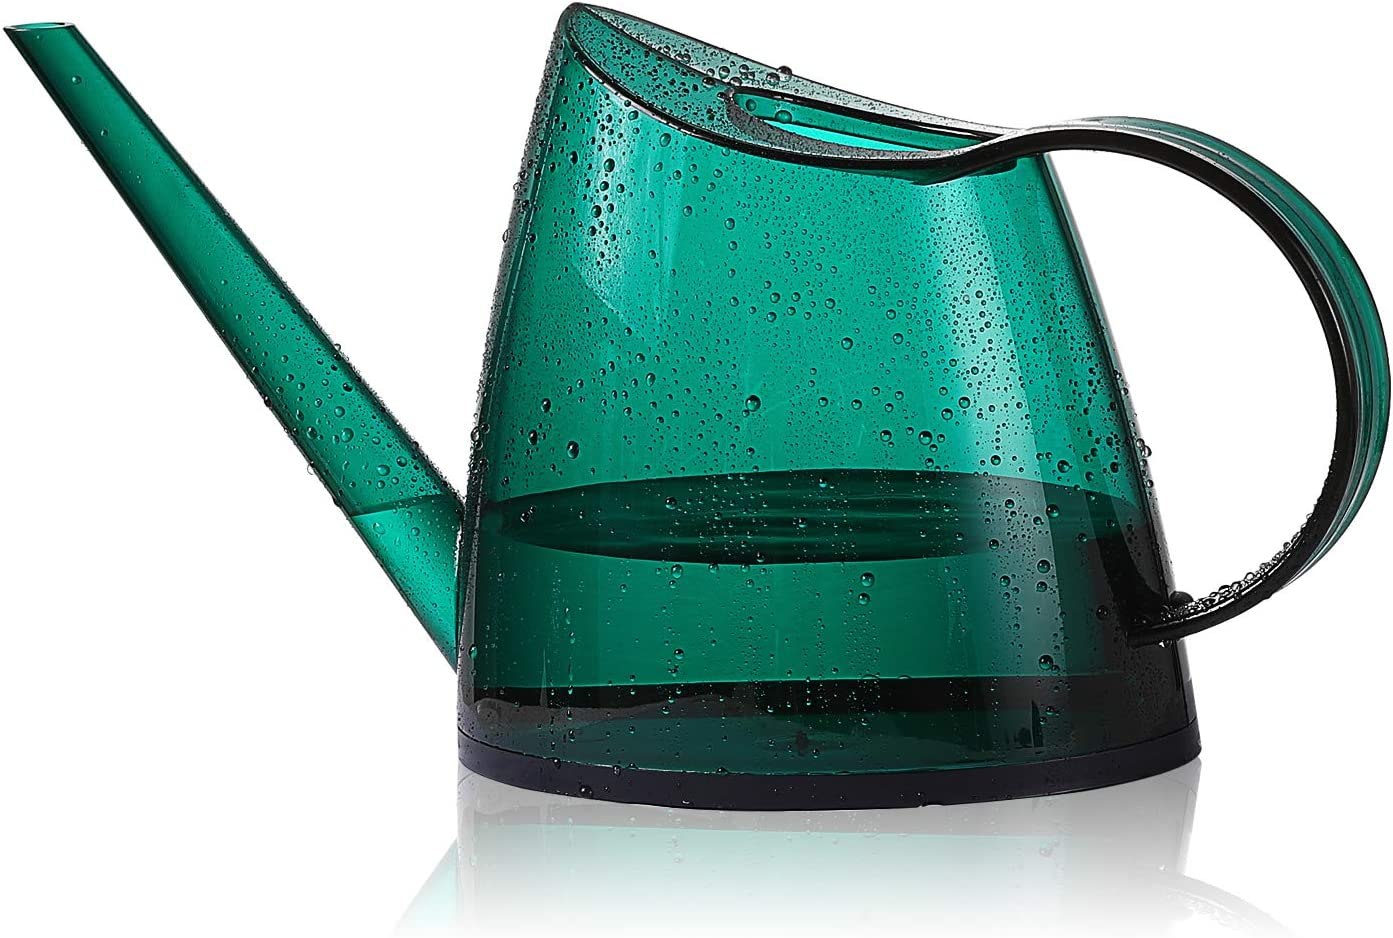 Watering Can, Transparent Long Spout Watering Kettle Nordic Style Garden Watering Pot for Indoor and Outdoor Watering Plants and Potted Flowers (1.4L, Green) : Garden & Outdoor